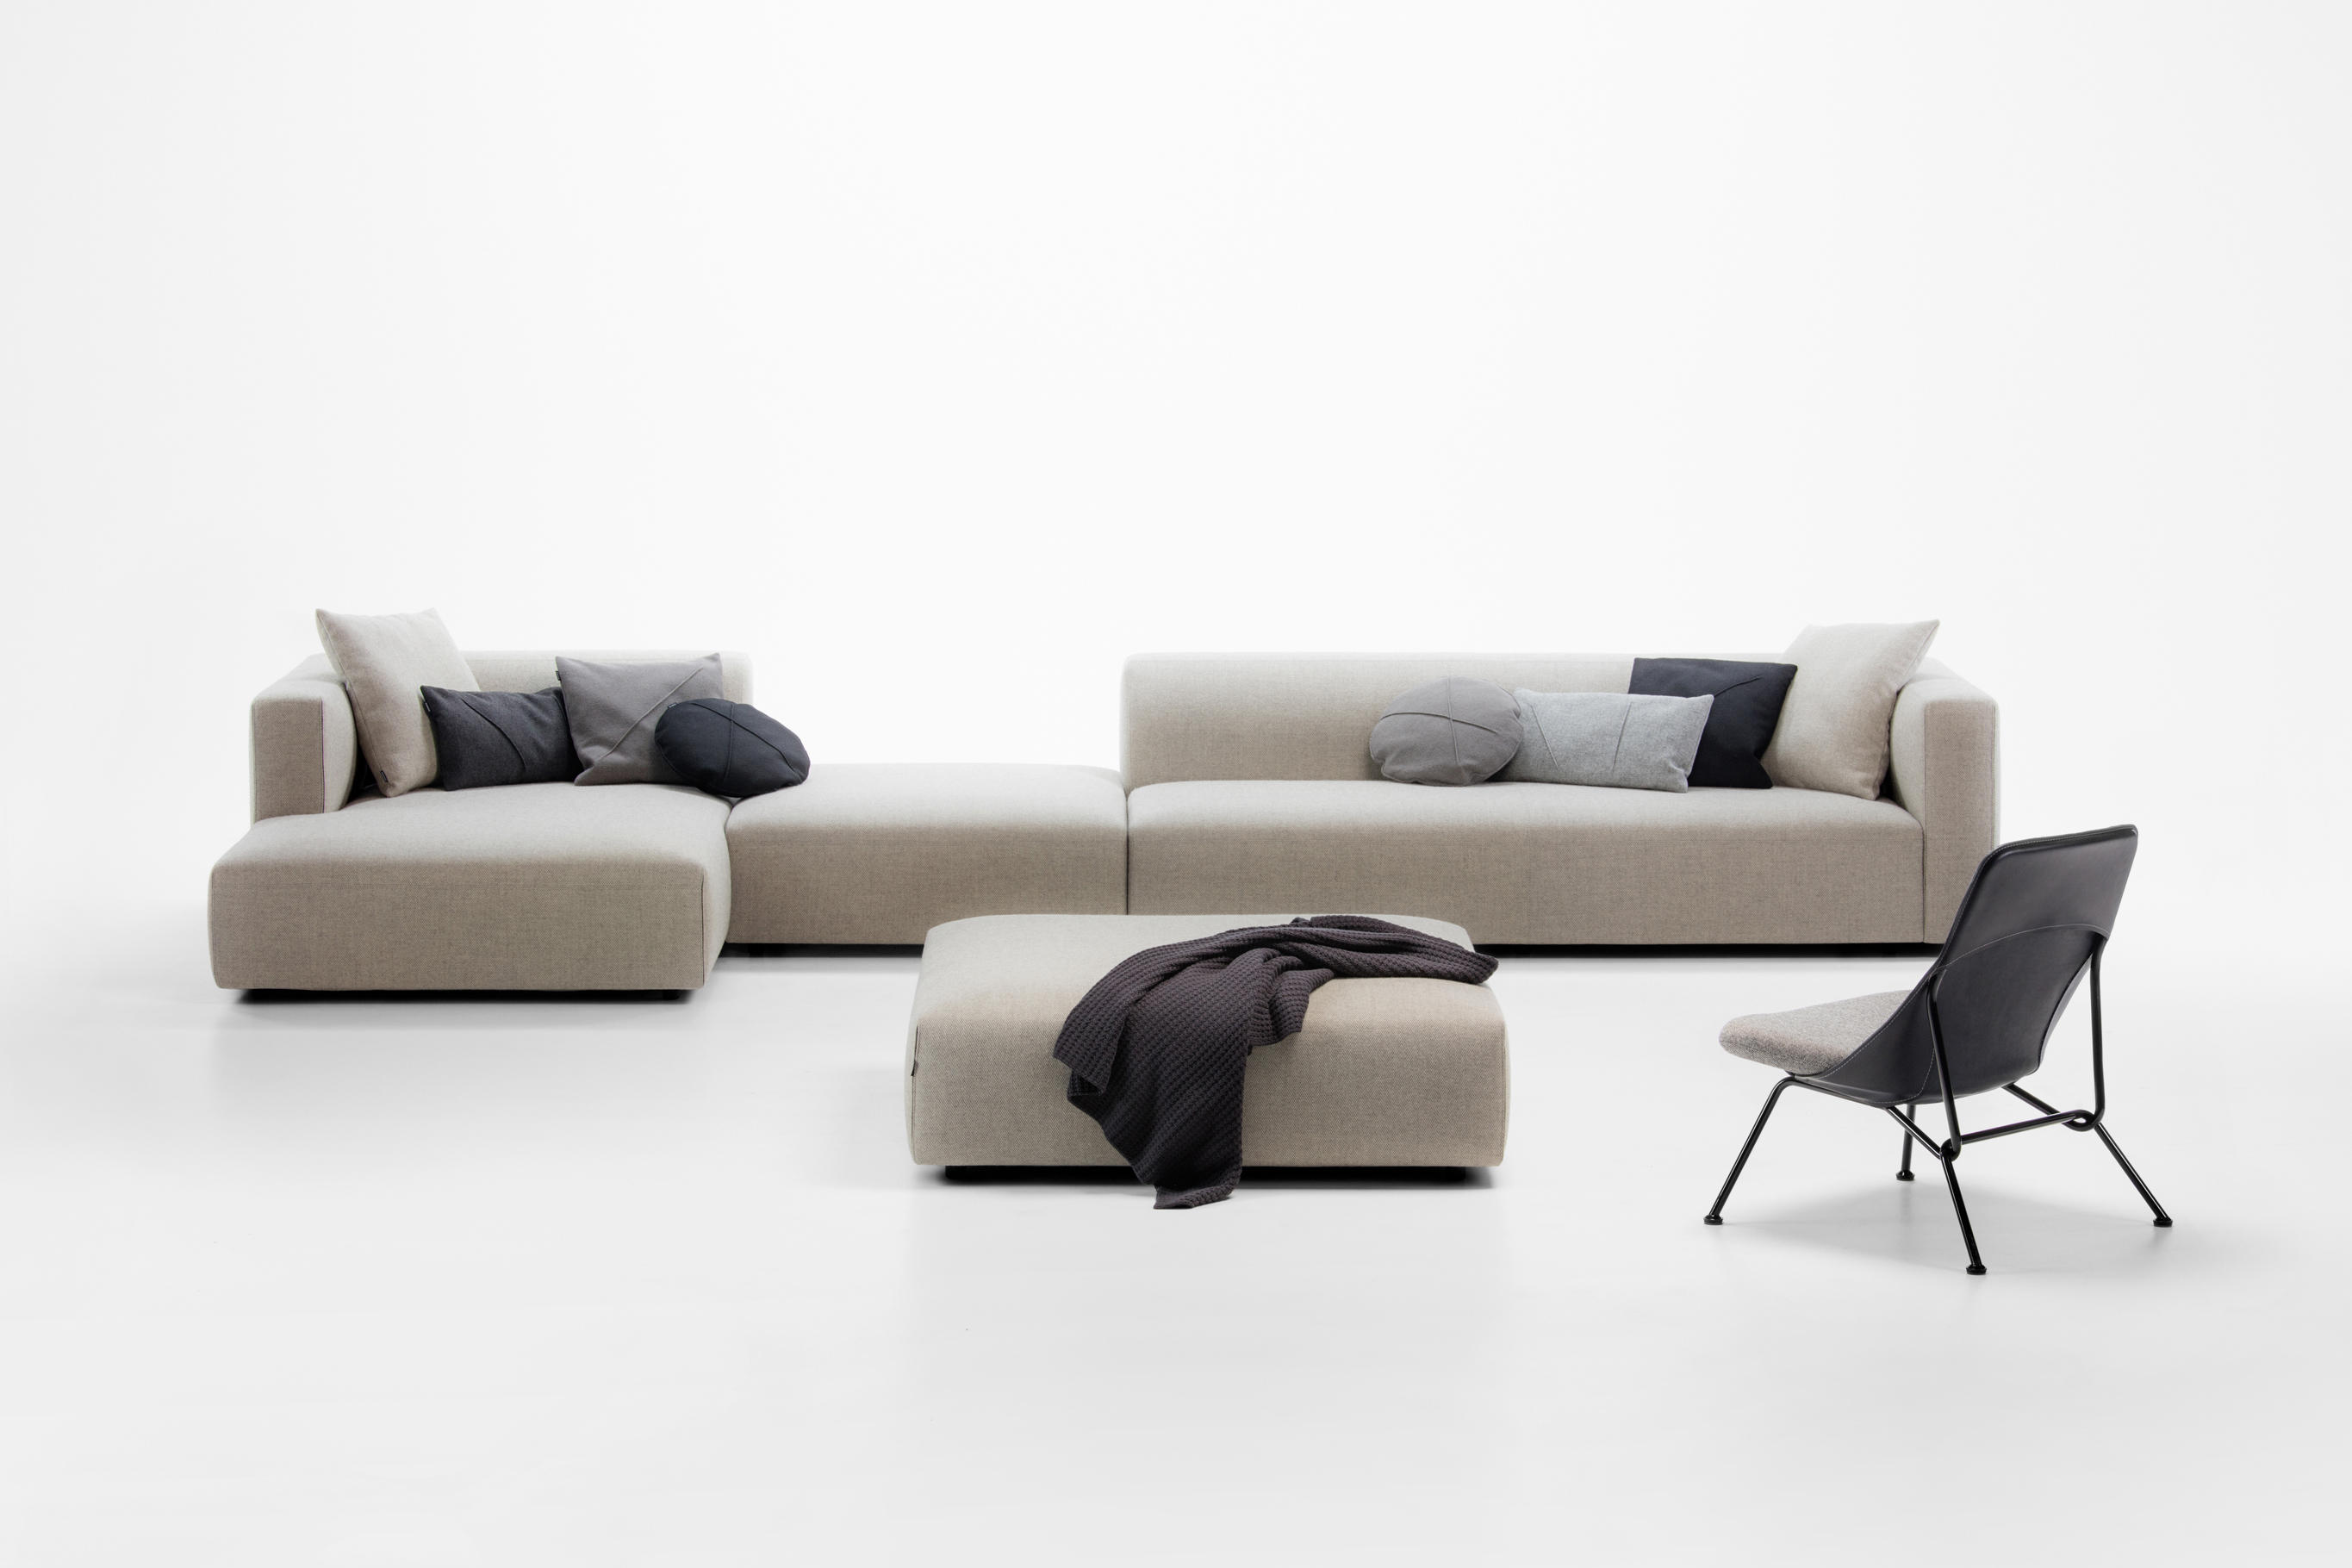 Match Sofa Modular Sofa Systems From Prostoria Architonic